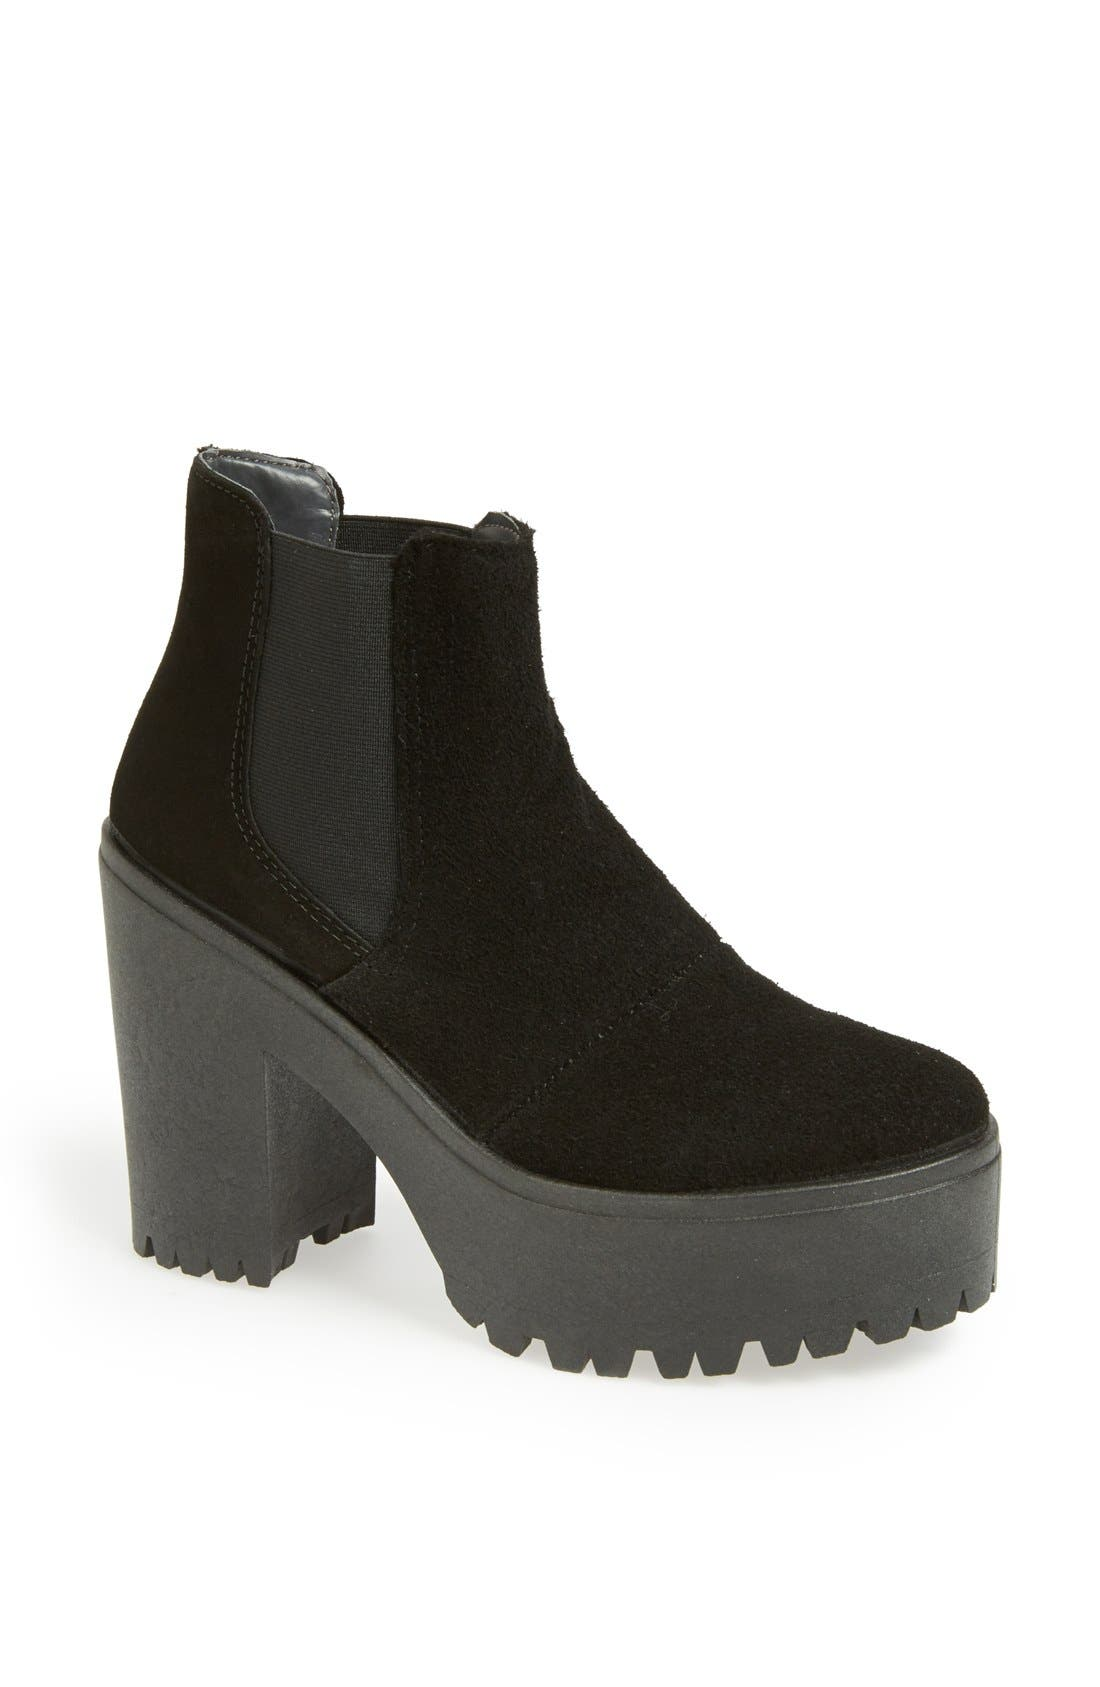 Alternate Image 1 Selected - Topshop 'Allsorts' Platform Boot